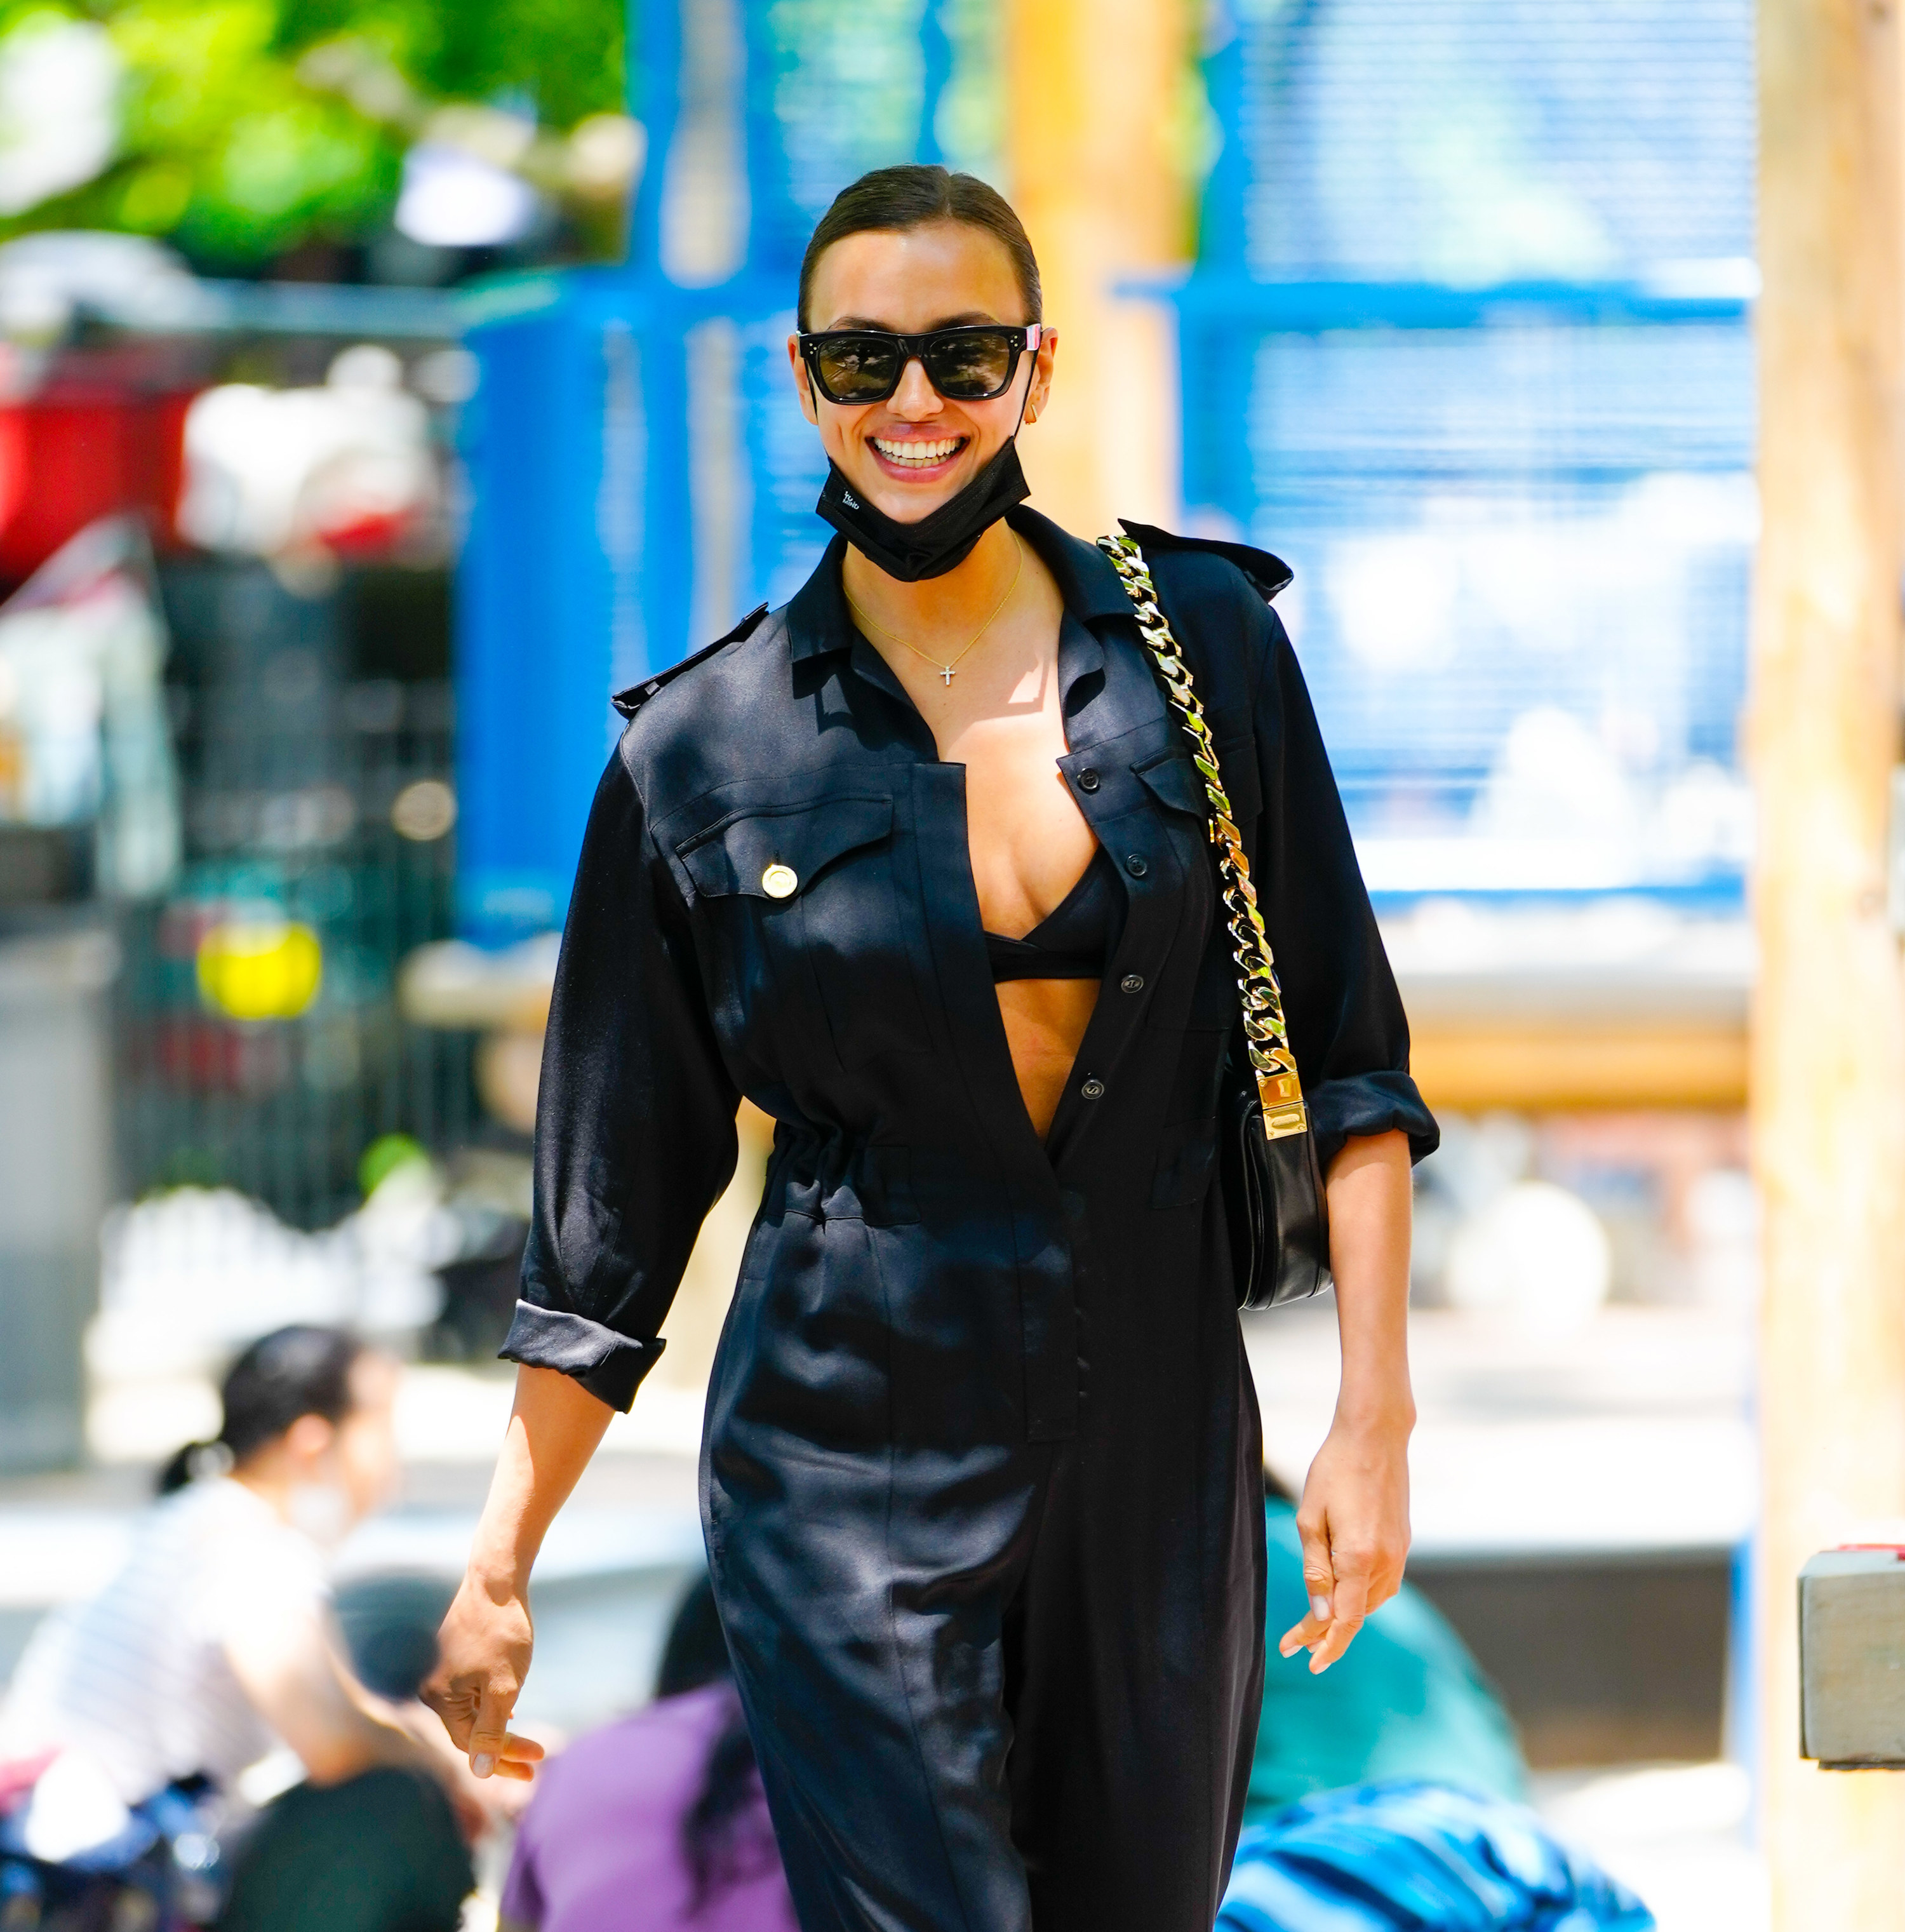 Irina Shayk is seen on June 10, 2021 in New York City wearing a jumpsuit and smiling